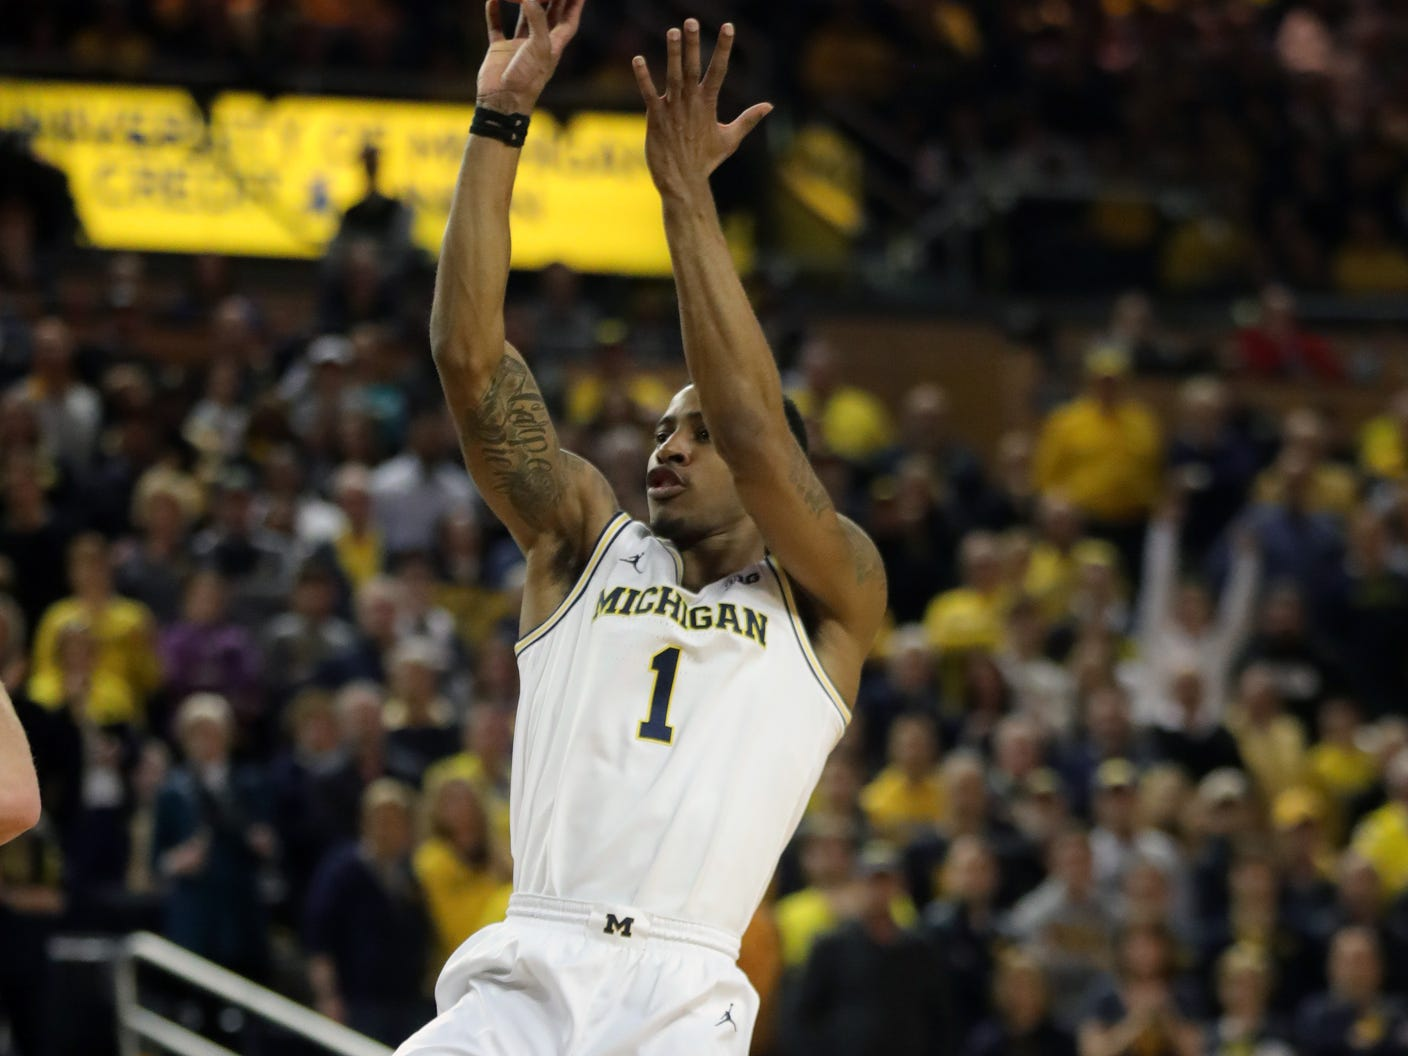 Michigan's Charles Matthews scores against Wisconsin during the second half Saturday, Feb. 9, 2019 at the Crisler Center.